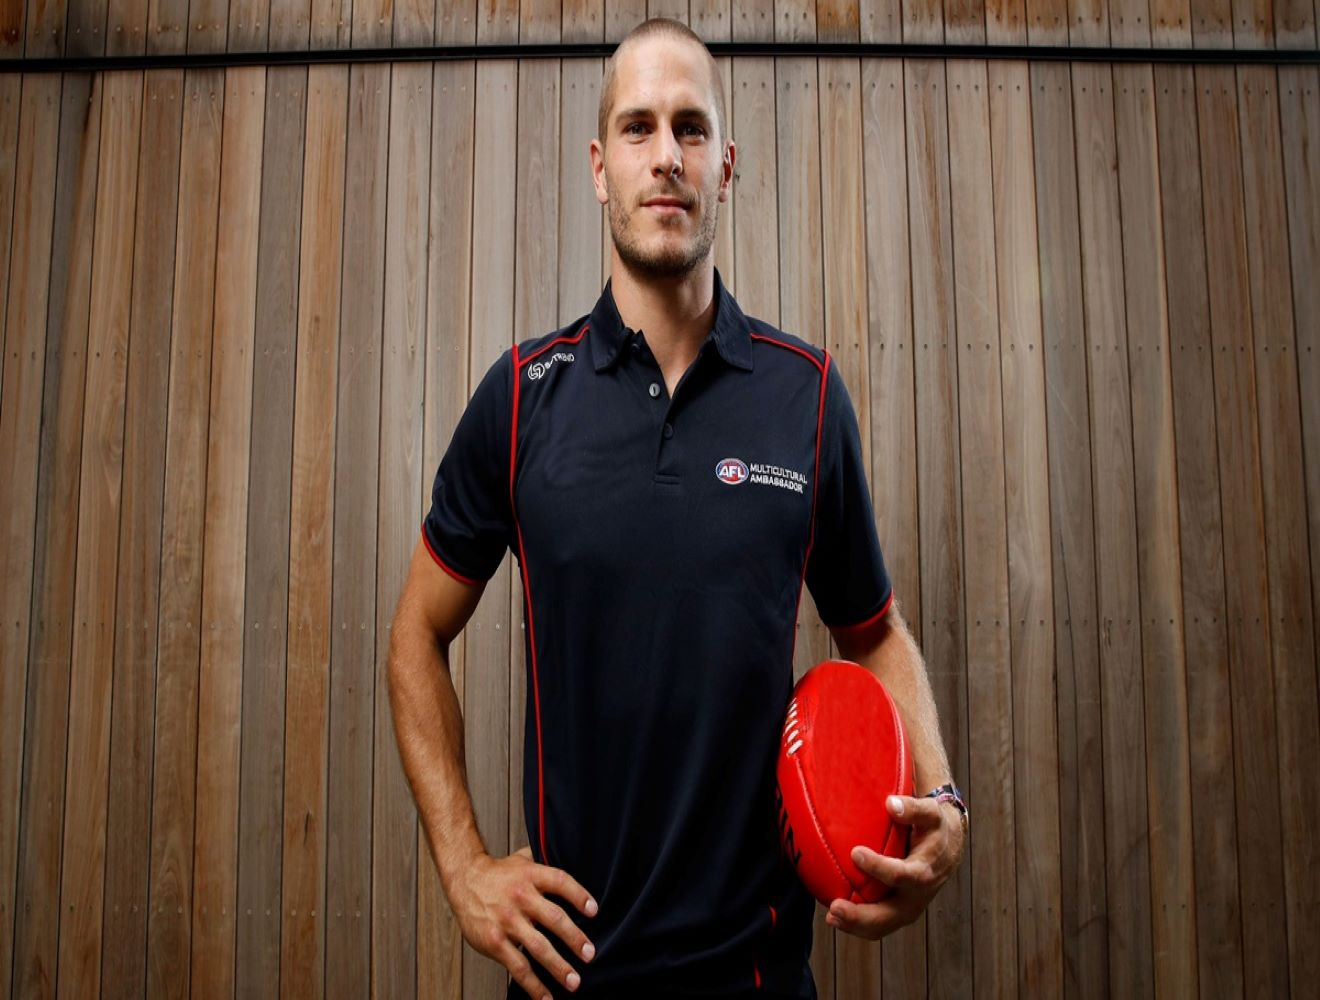 AFL Community Ambassador - Emerging Leaders Course